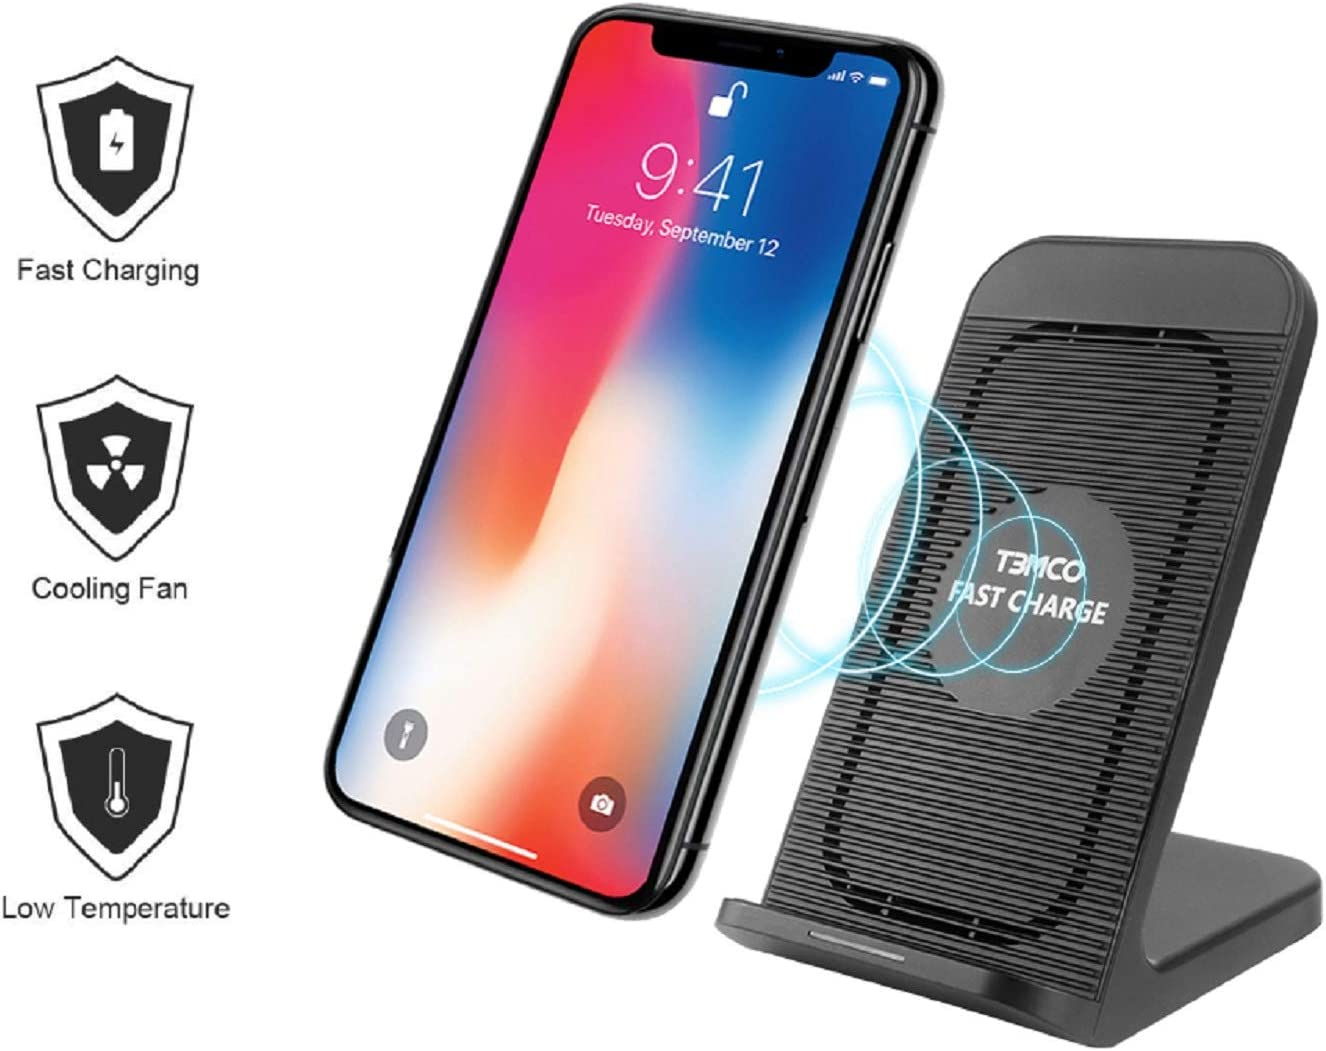 T3MCO 2 Coils 7.5w Qi Fast Wireless Charging Stand with Cooling Fan for Samsung Galaxy S8/S8 Plus/Note 8/S7/S7 Edge/S6 Edge Plus/Note 5/S9/S9 Plus, iPhone 8/8 Plus/iPhone X,